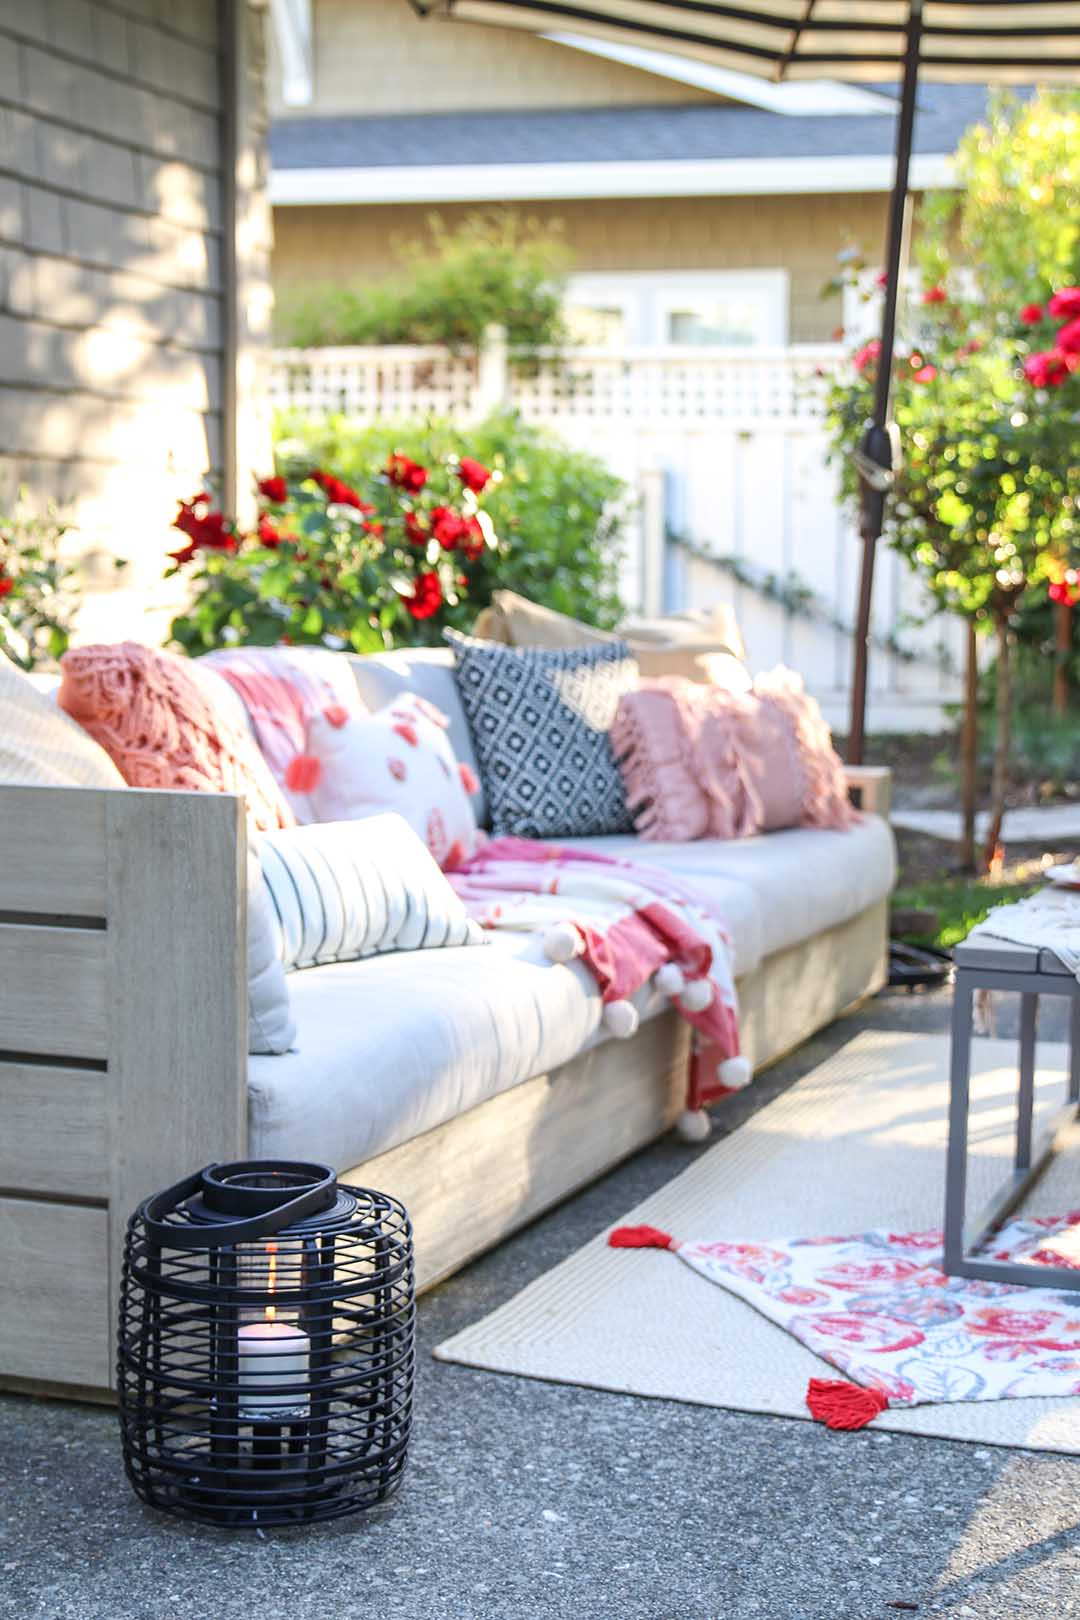 Patio Decorating Ideas: 7 Simple Summer Updates - Modern Glam on Basic Patio Ideas id=25120